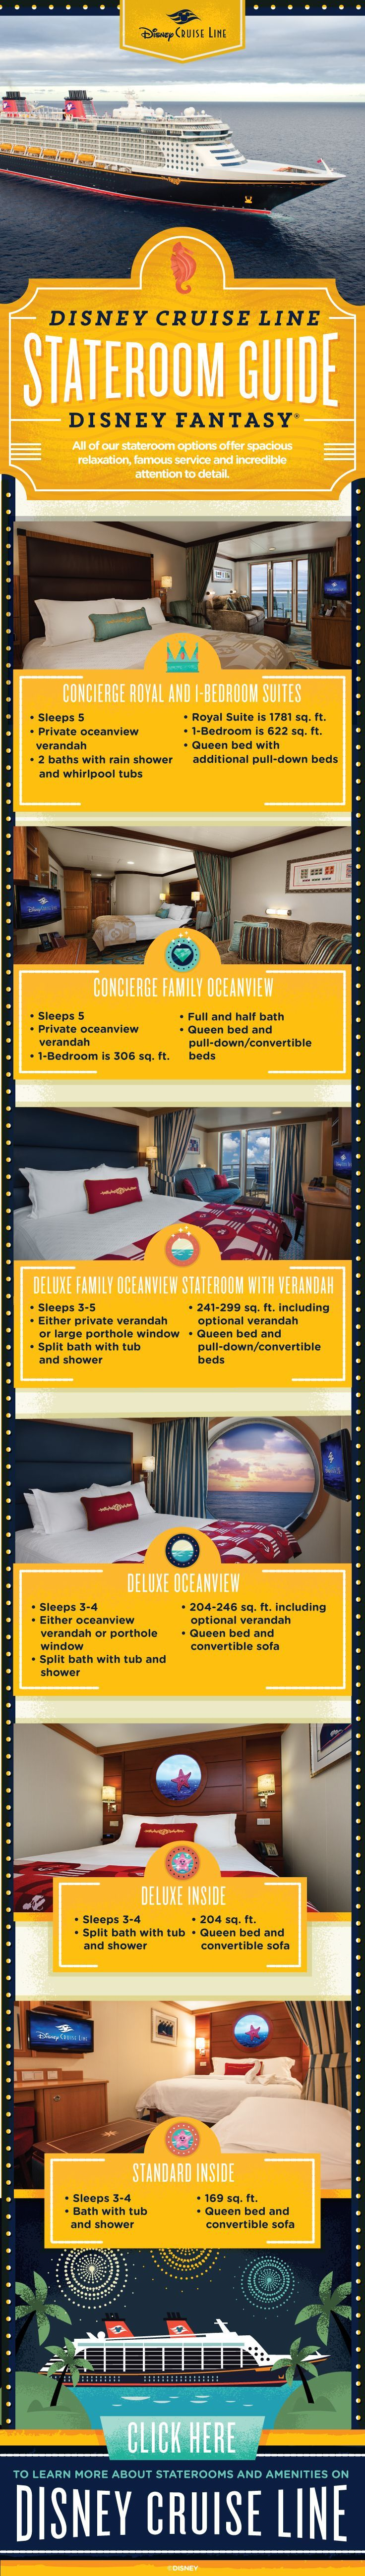 All Disney Cruise Line stateroom options offer spacious relaxation, famous Guest service and incredible attention to detail. Check out this handy guide to see which stateroom is best for your family onboard the Disney Fantasy!